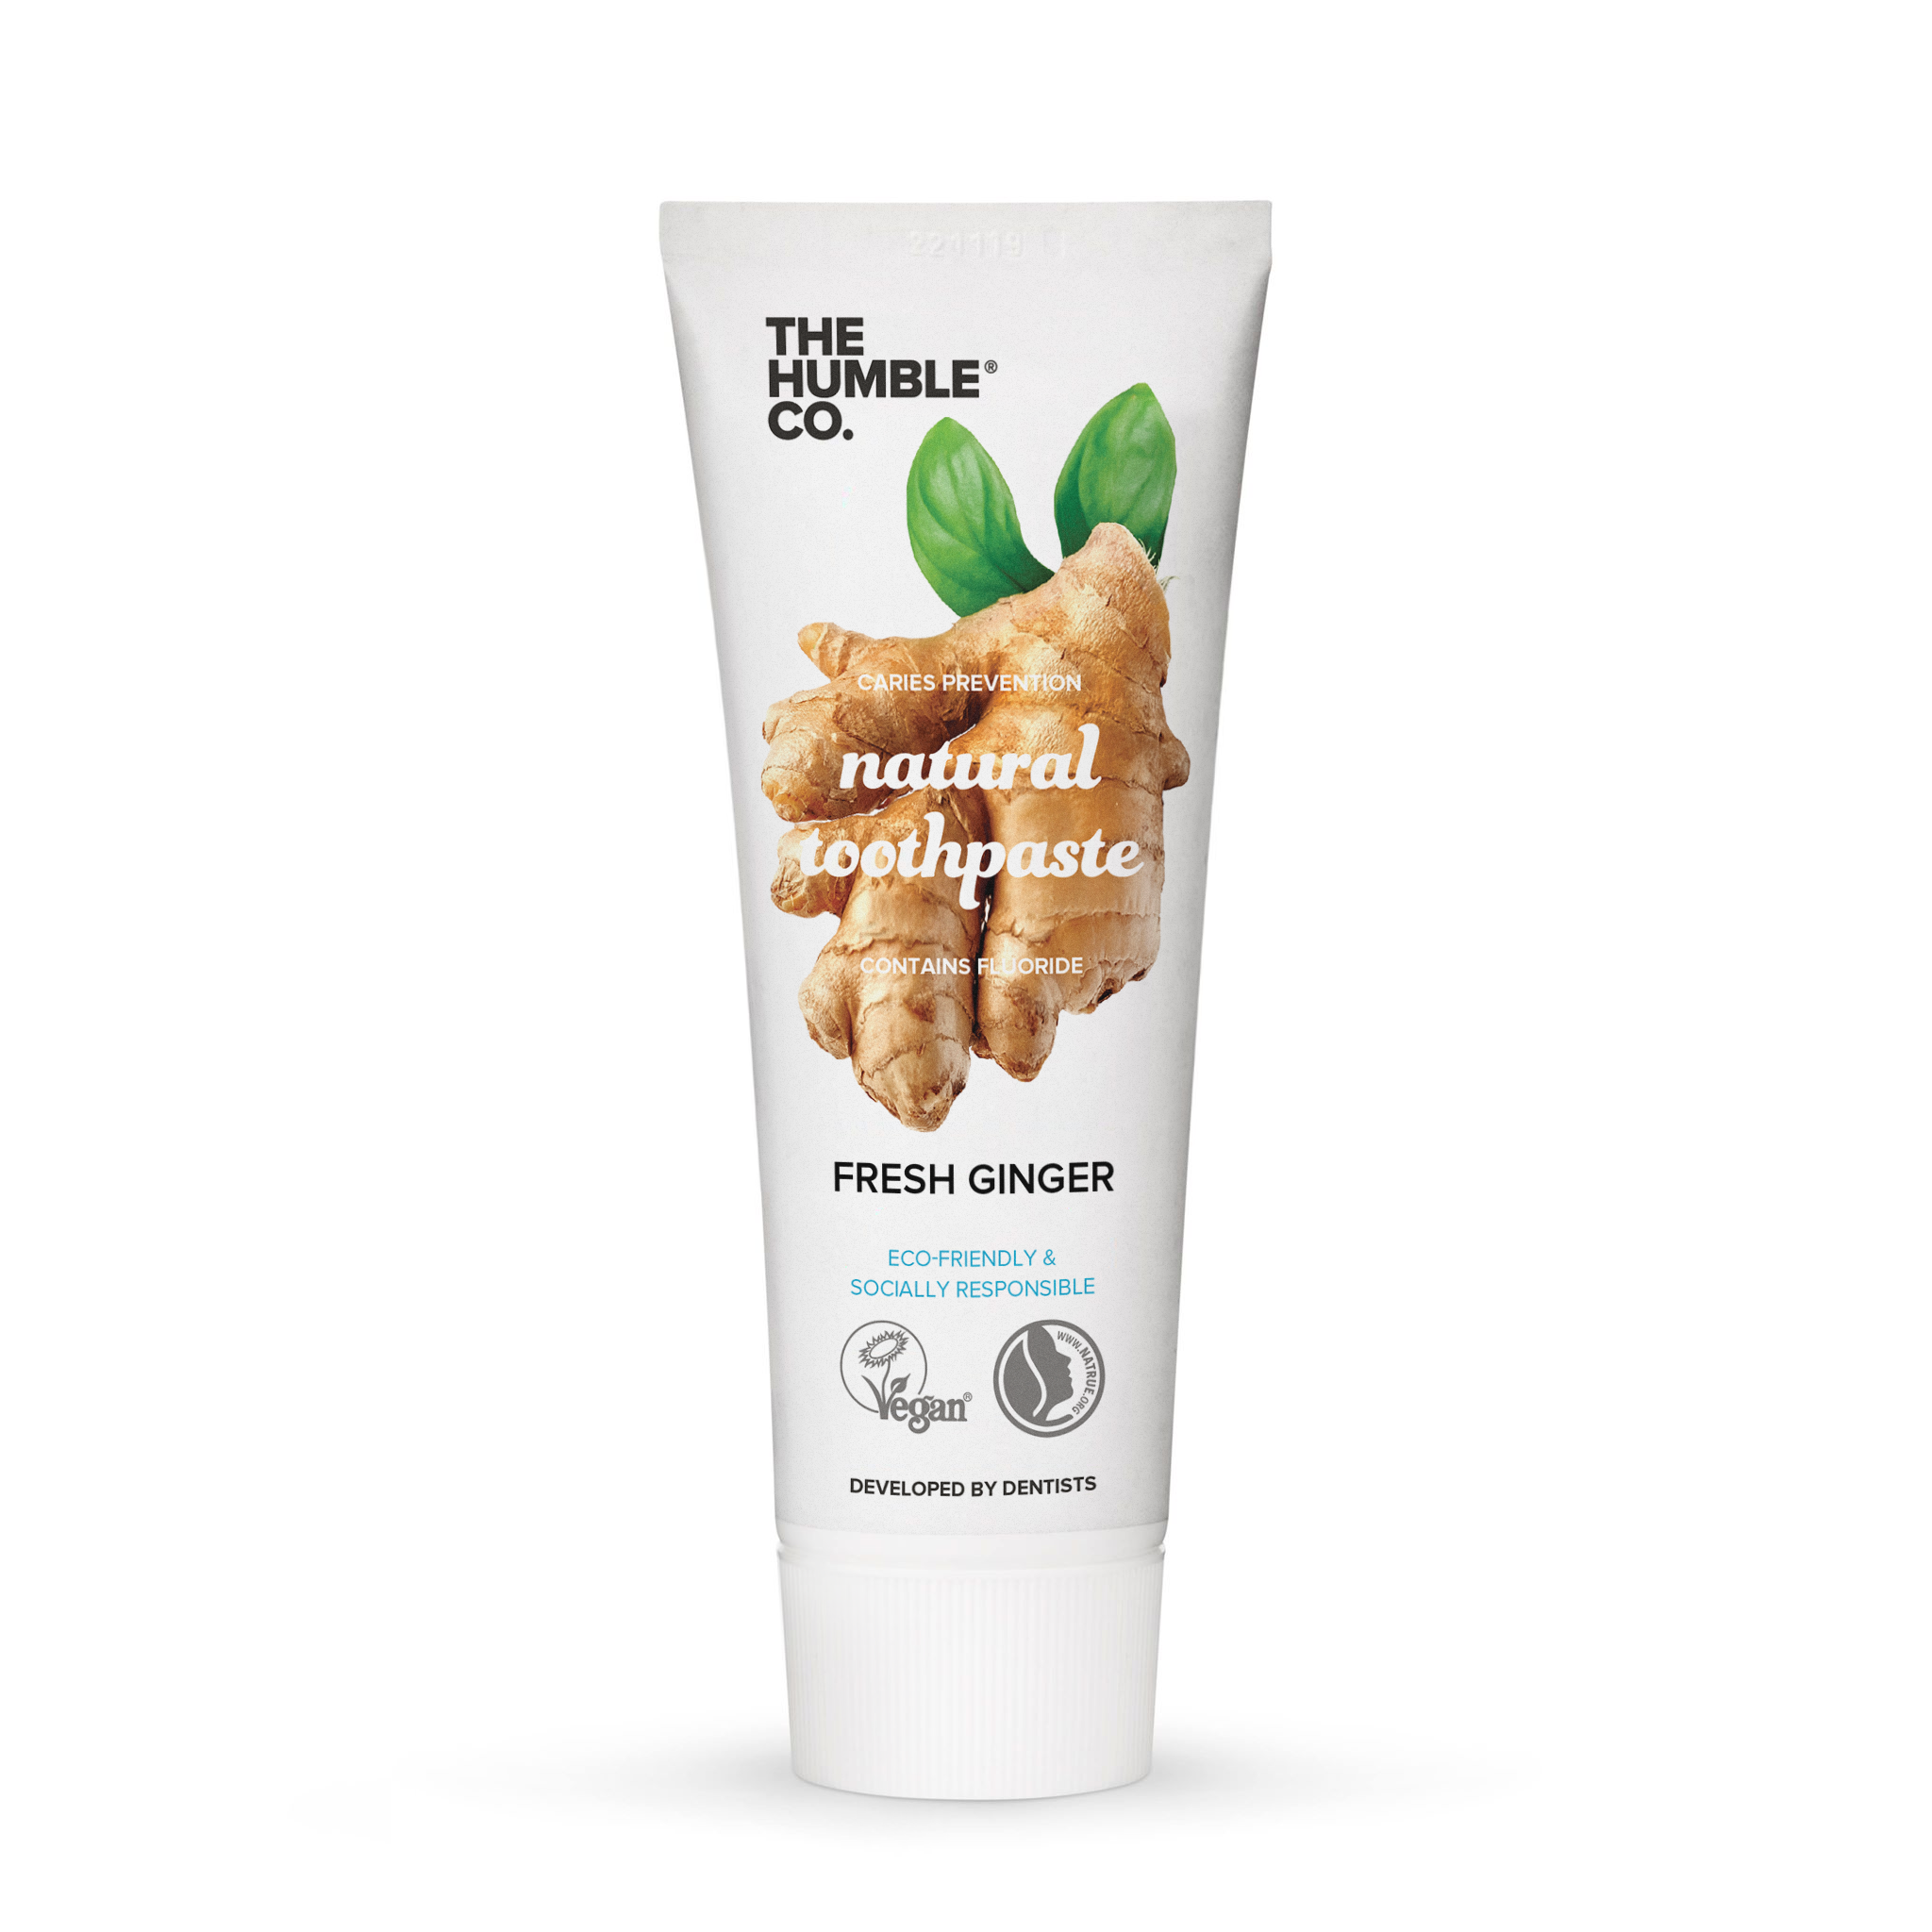 The Humble Co. Natural toothpaste - Ginger 75ml - 14 tubes